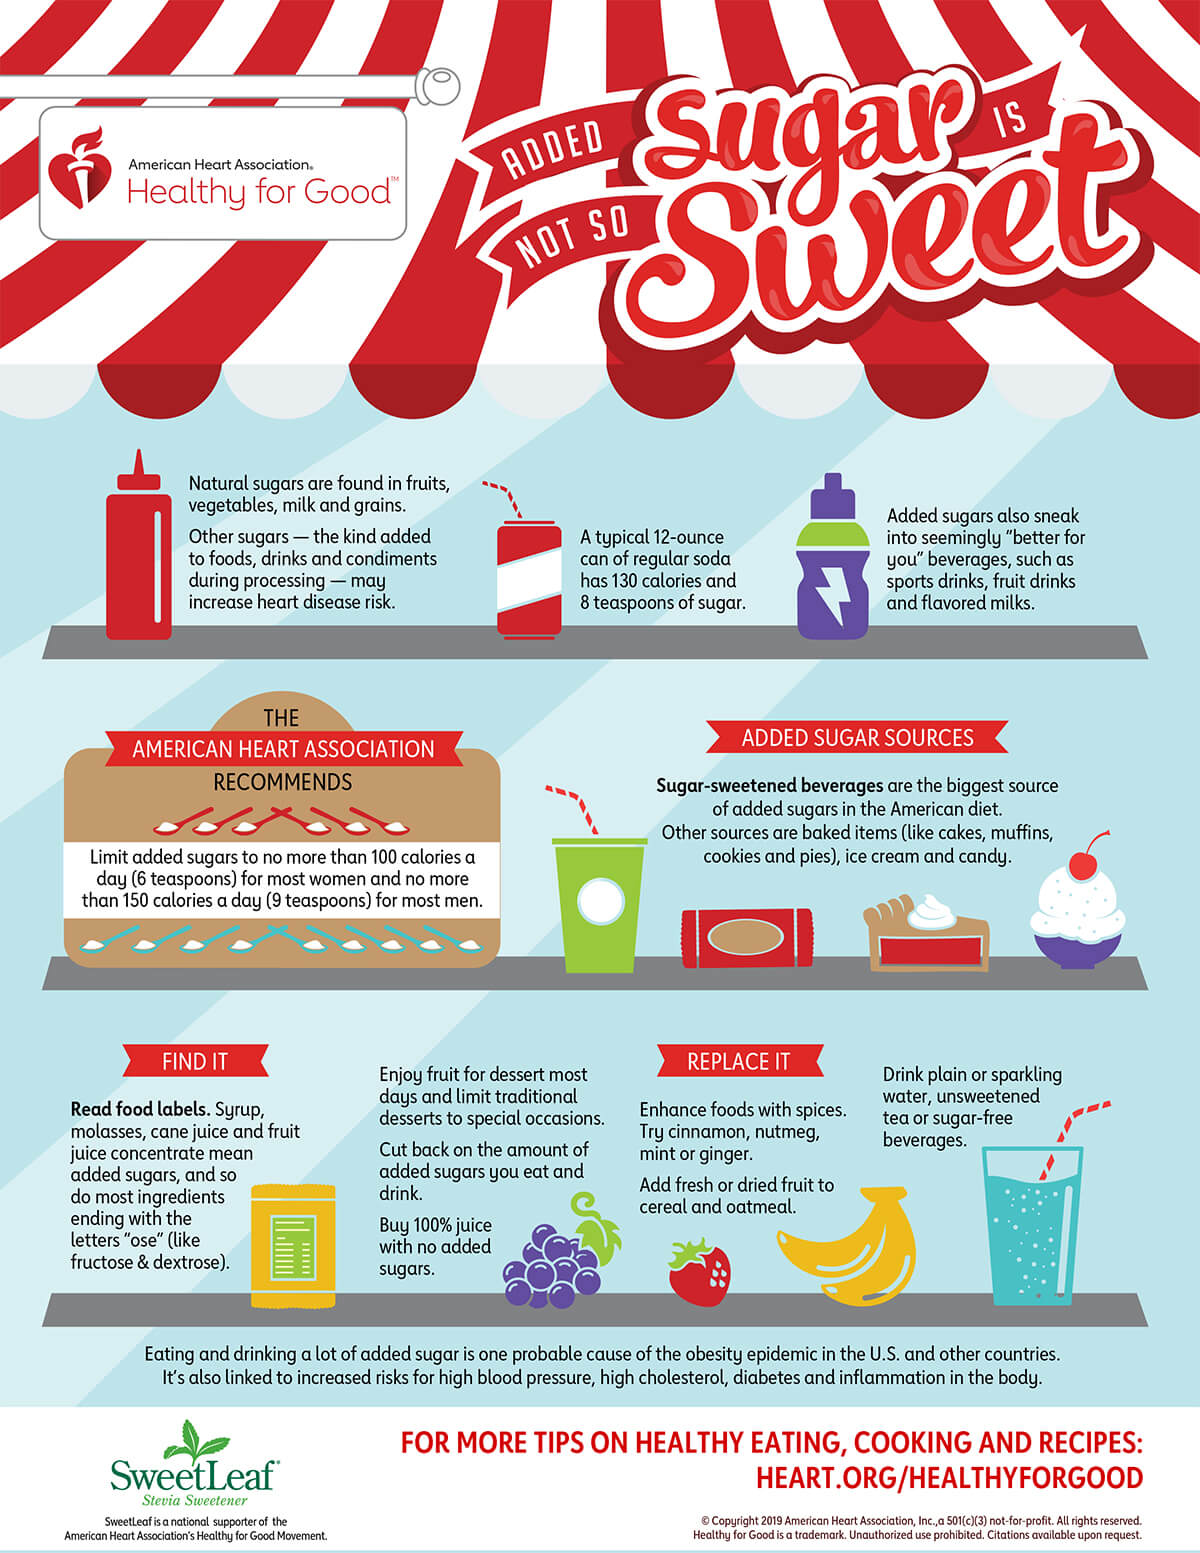 added sugar is not so sweet infographic image